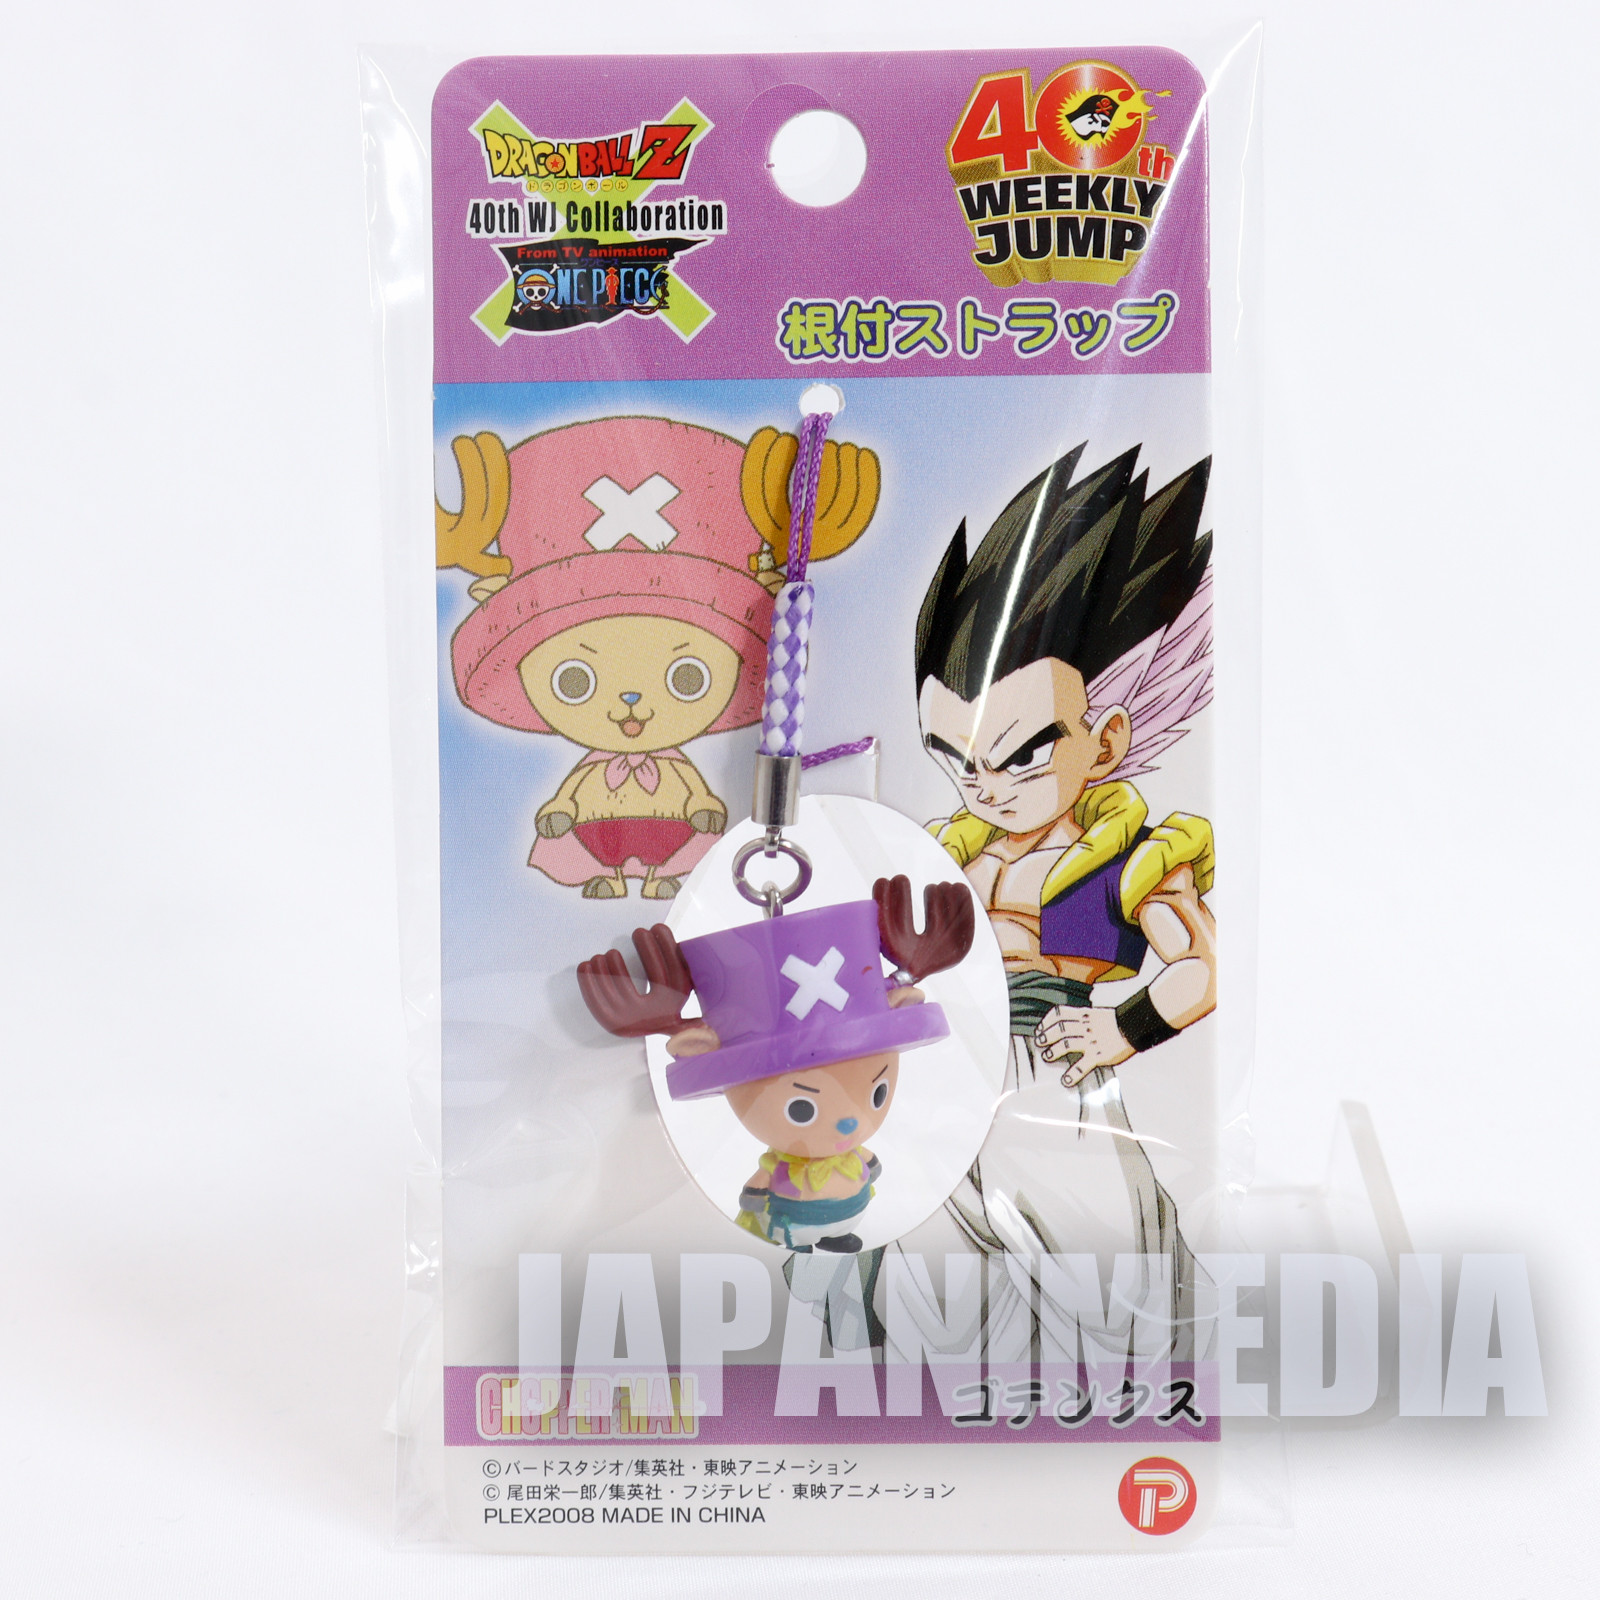 Dragon Ball Z x ONE PIECE Chopper Man x Gotenks Figure Strap JAPAN ANIME